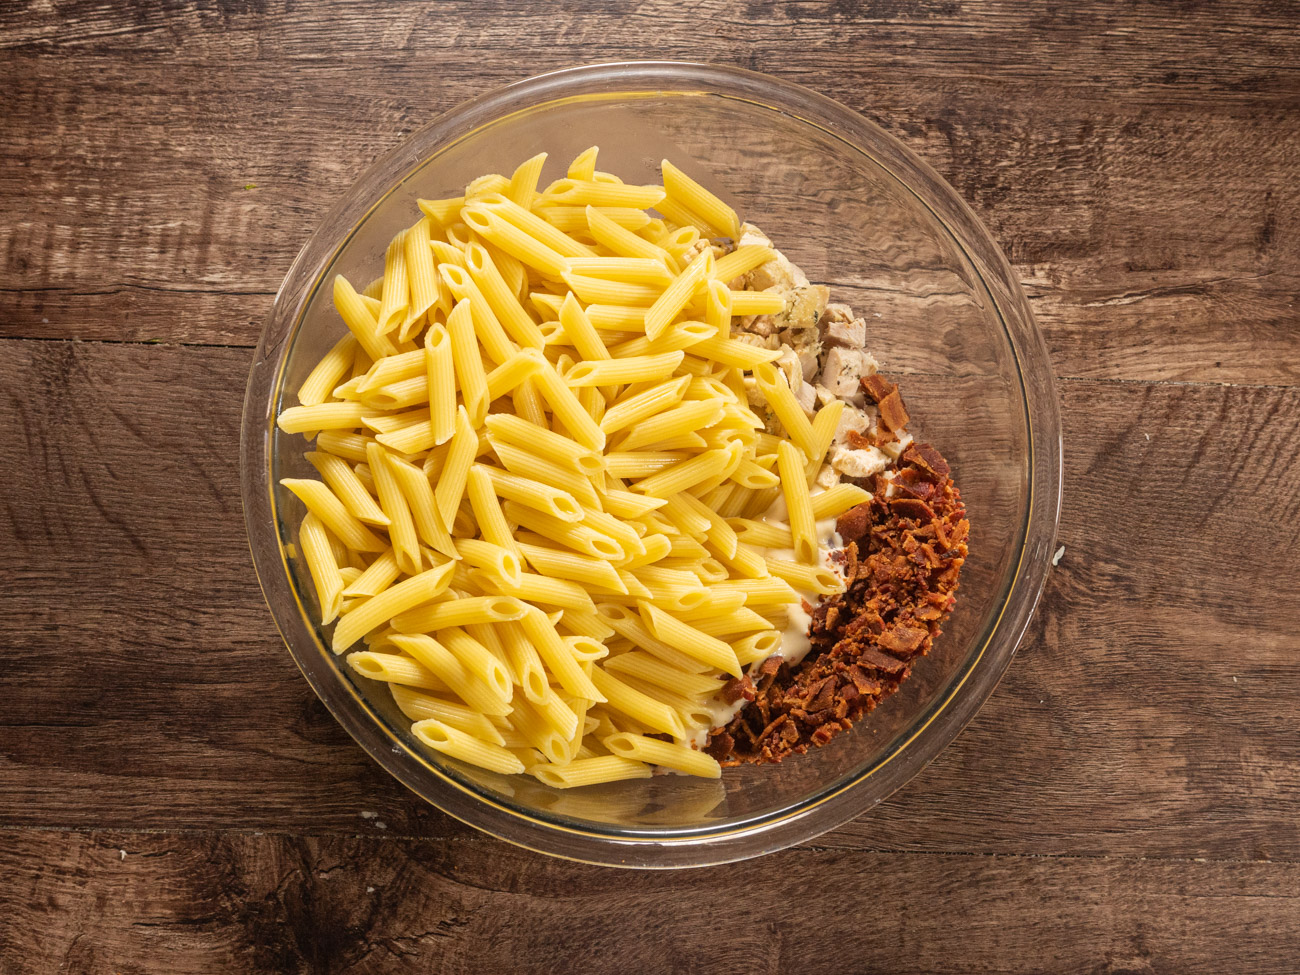 In large bowl, combine pasta, chicken, bacon, Alfredo pasta sauce, and ranch dressing.